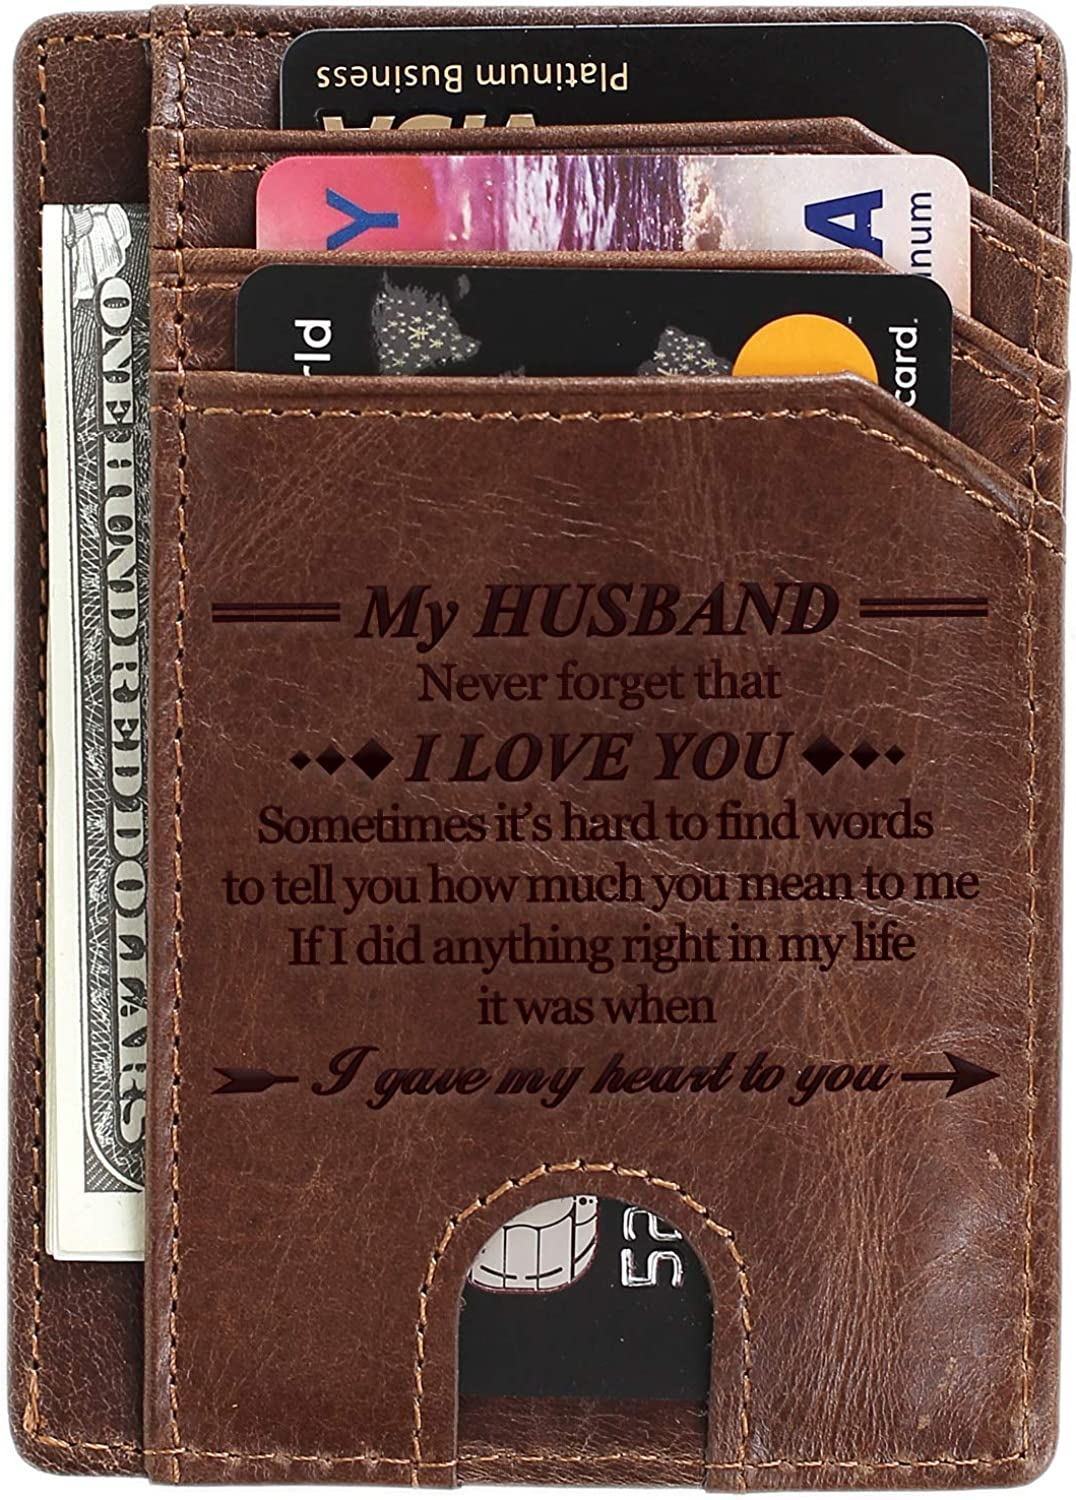 Lipstick Kiss Faux Leather Money Clip Wallet Personalized Engraving Included